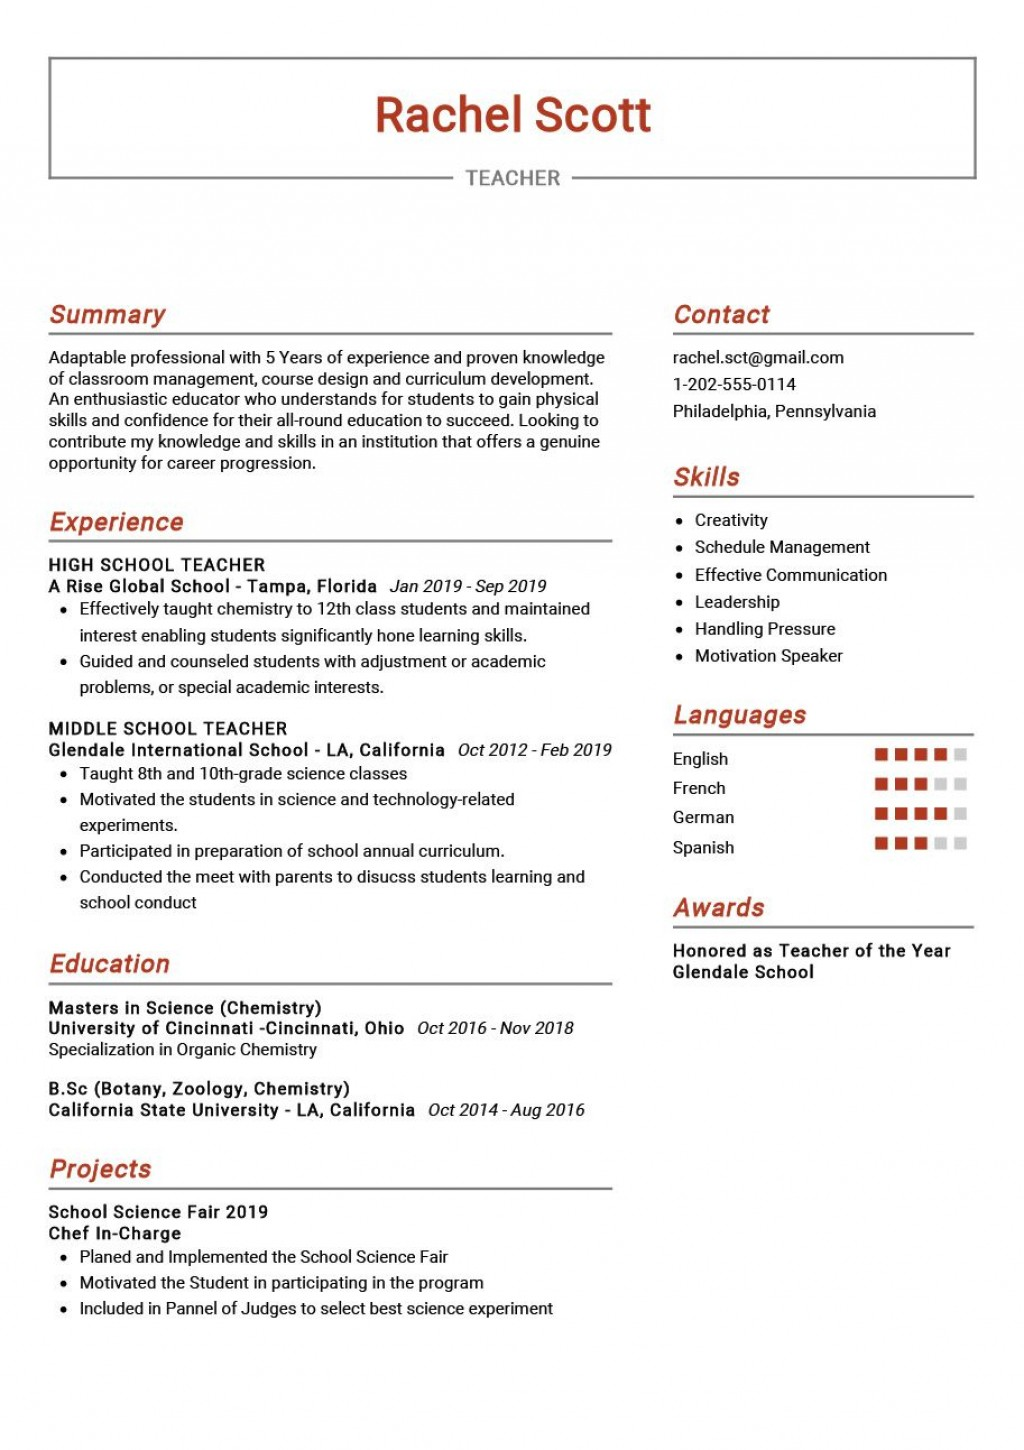 008 Rare Resume Template For Teaching High Resolution  Cv Job Application Assistant In PakistanLarge